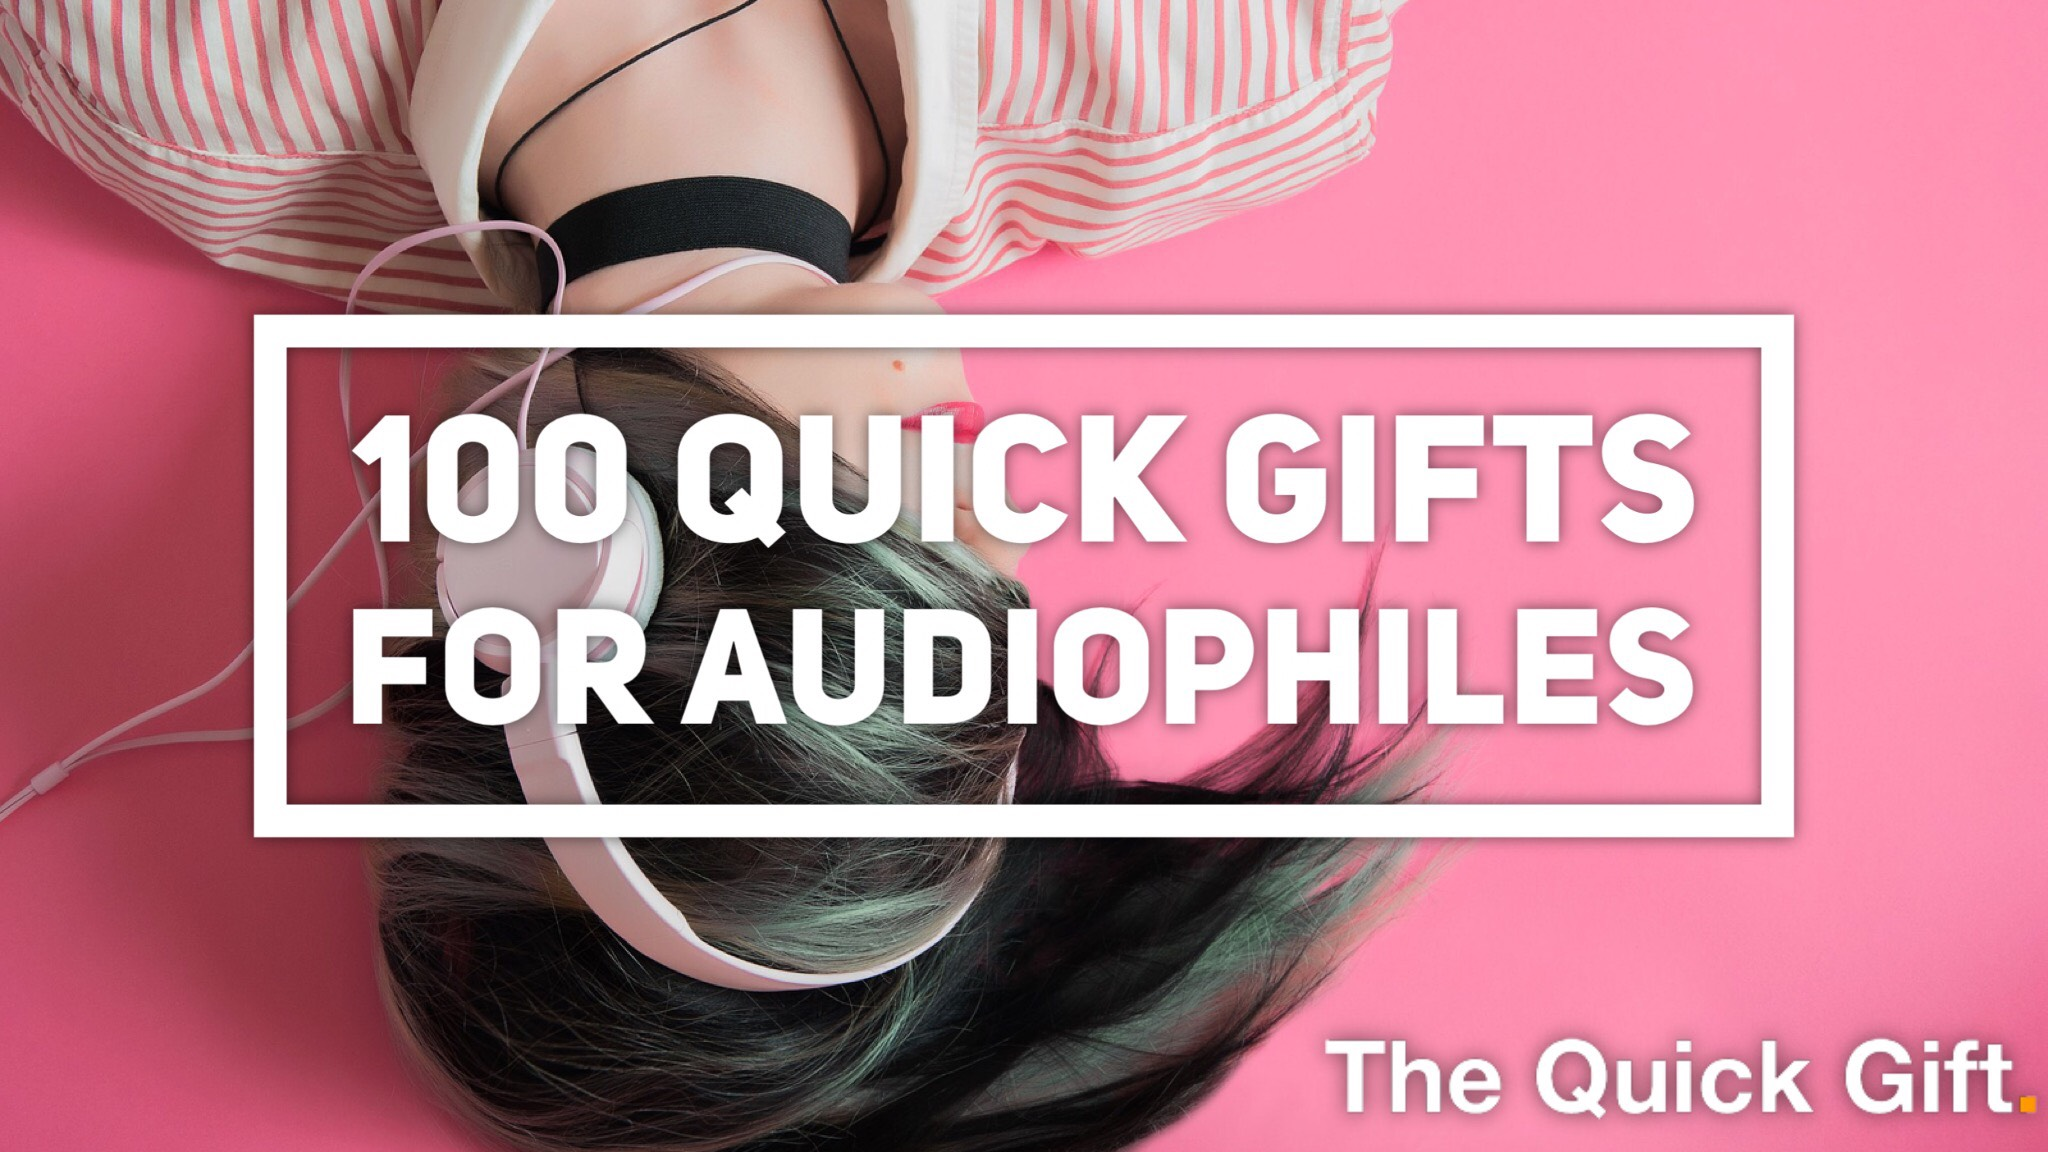 100 quick gifts for audiophiles